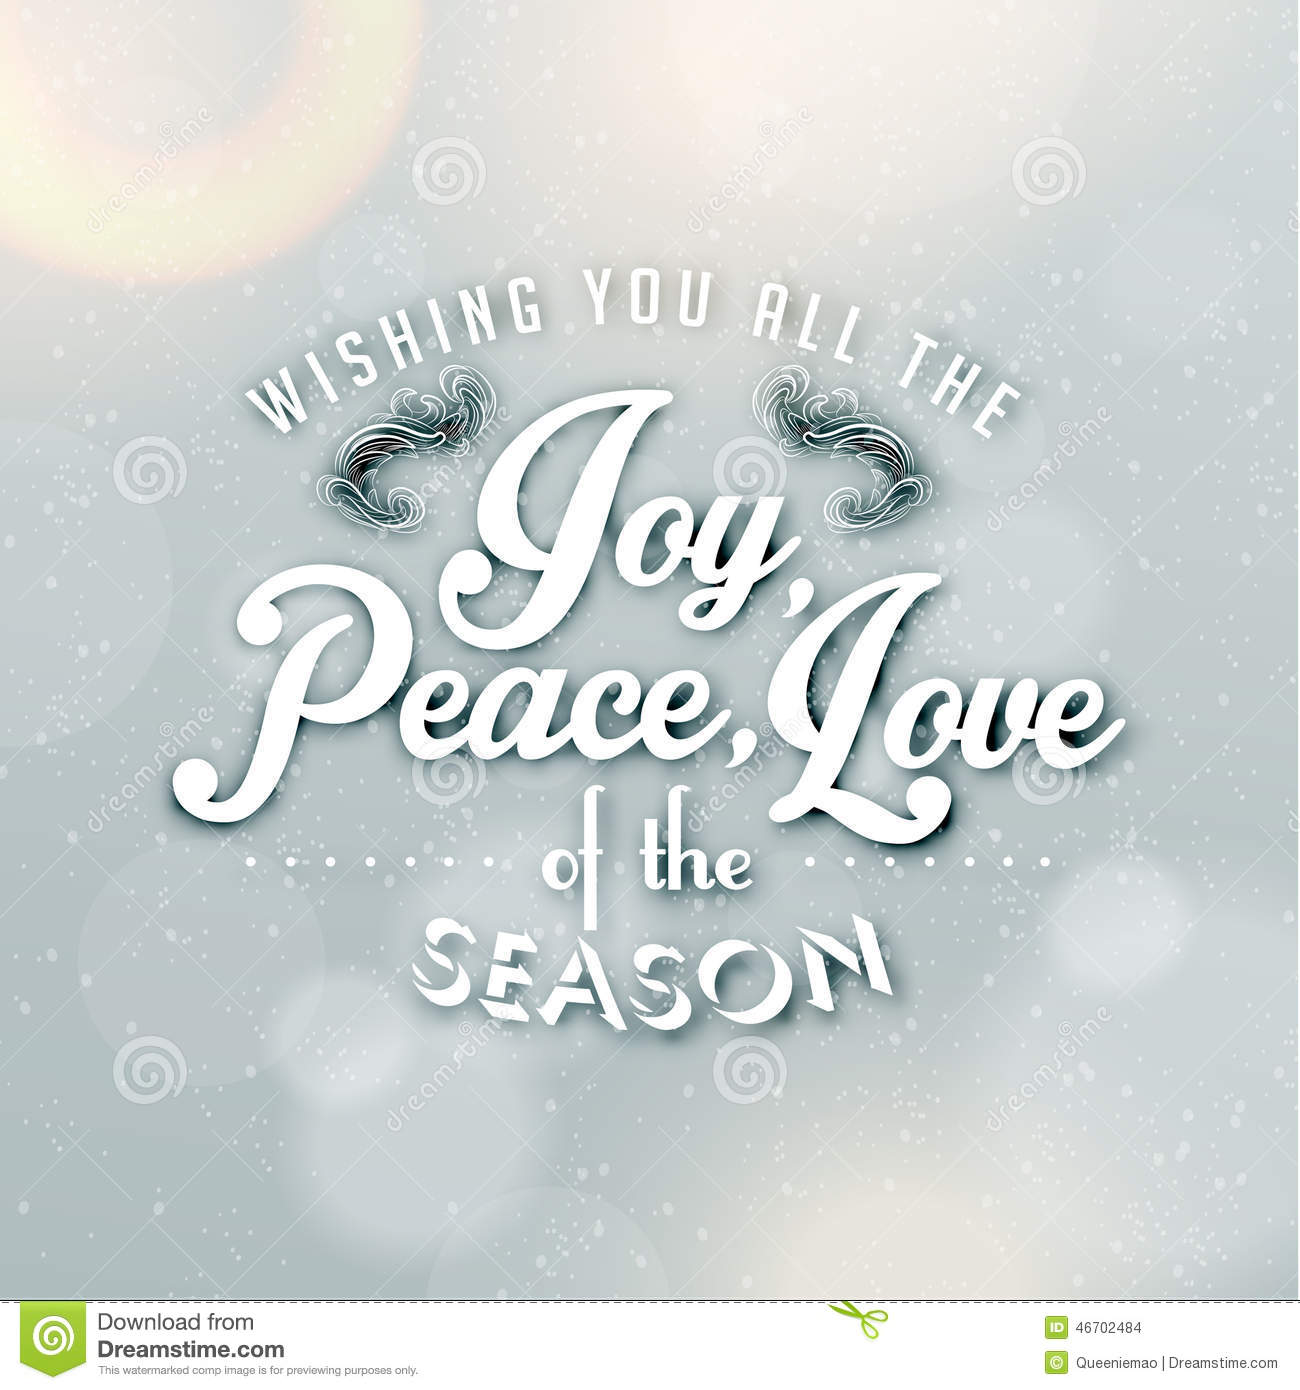 Merry christmas season greetings quote stock illustration merry christmas season greetings quote poster background m4hsunfo